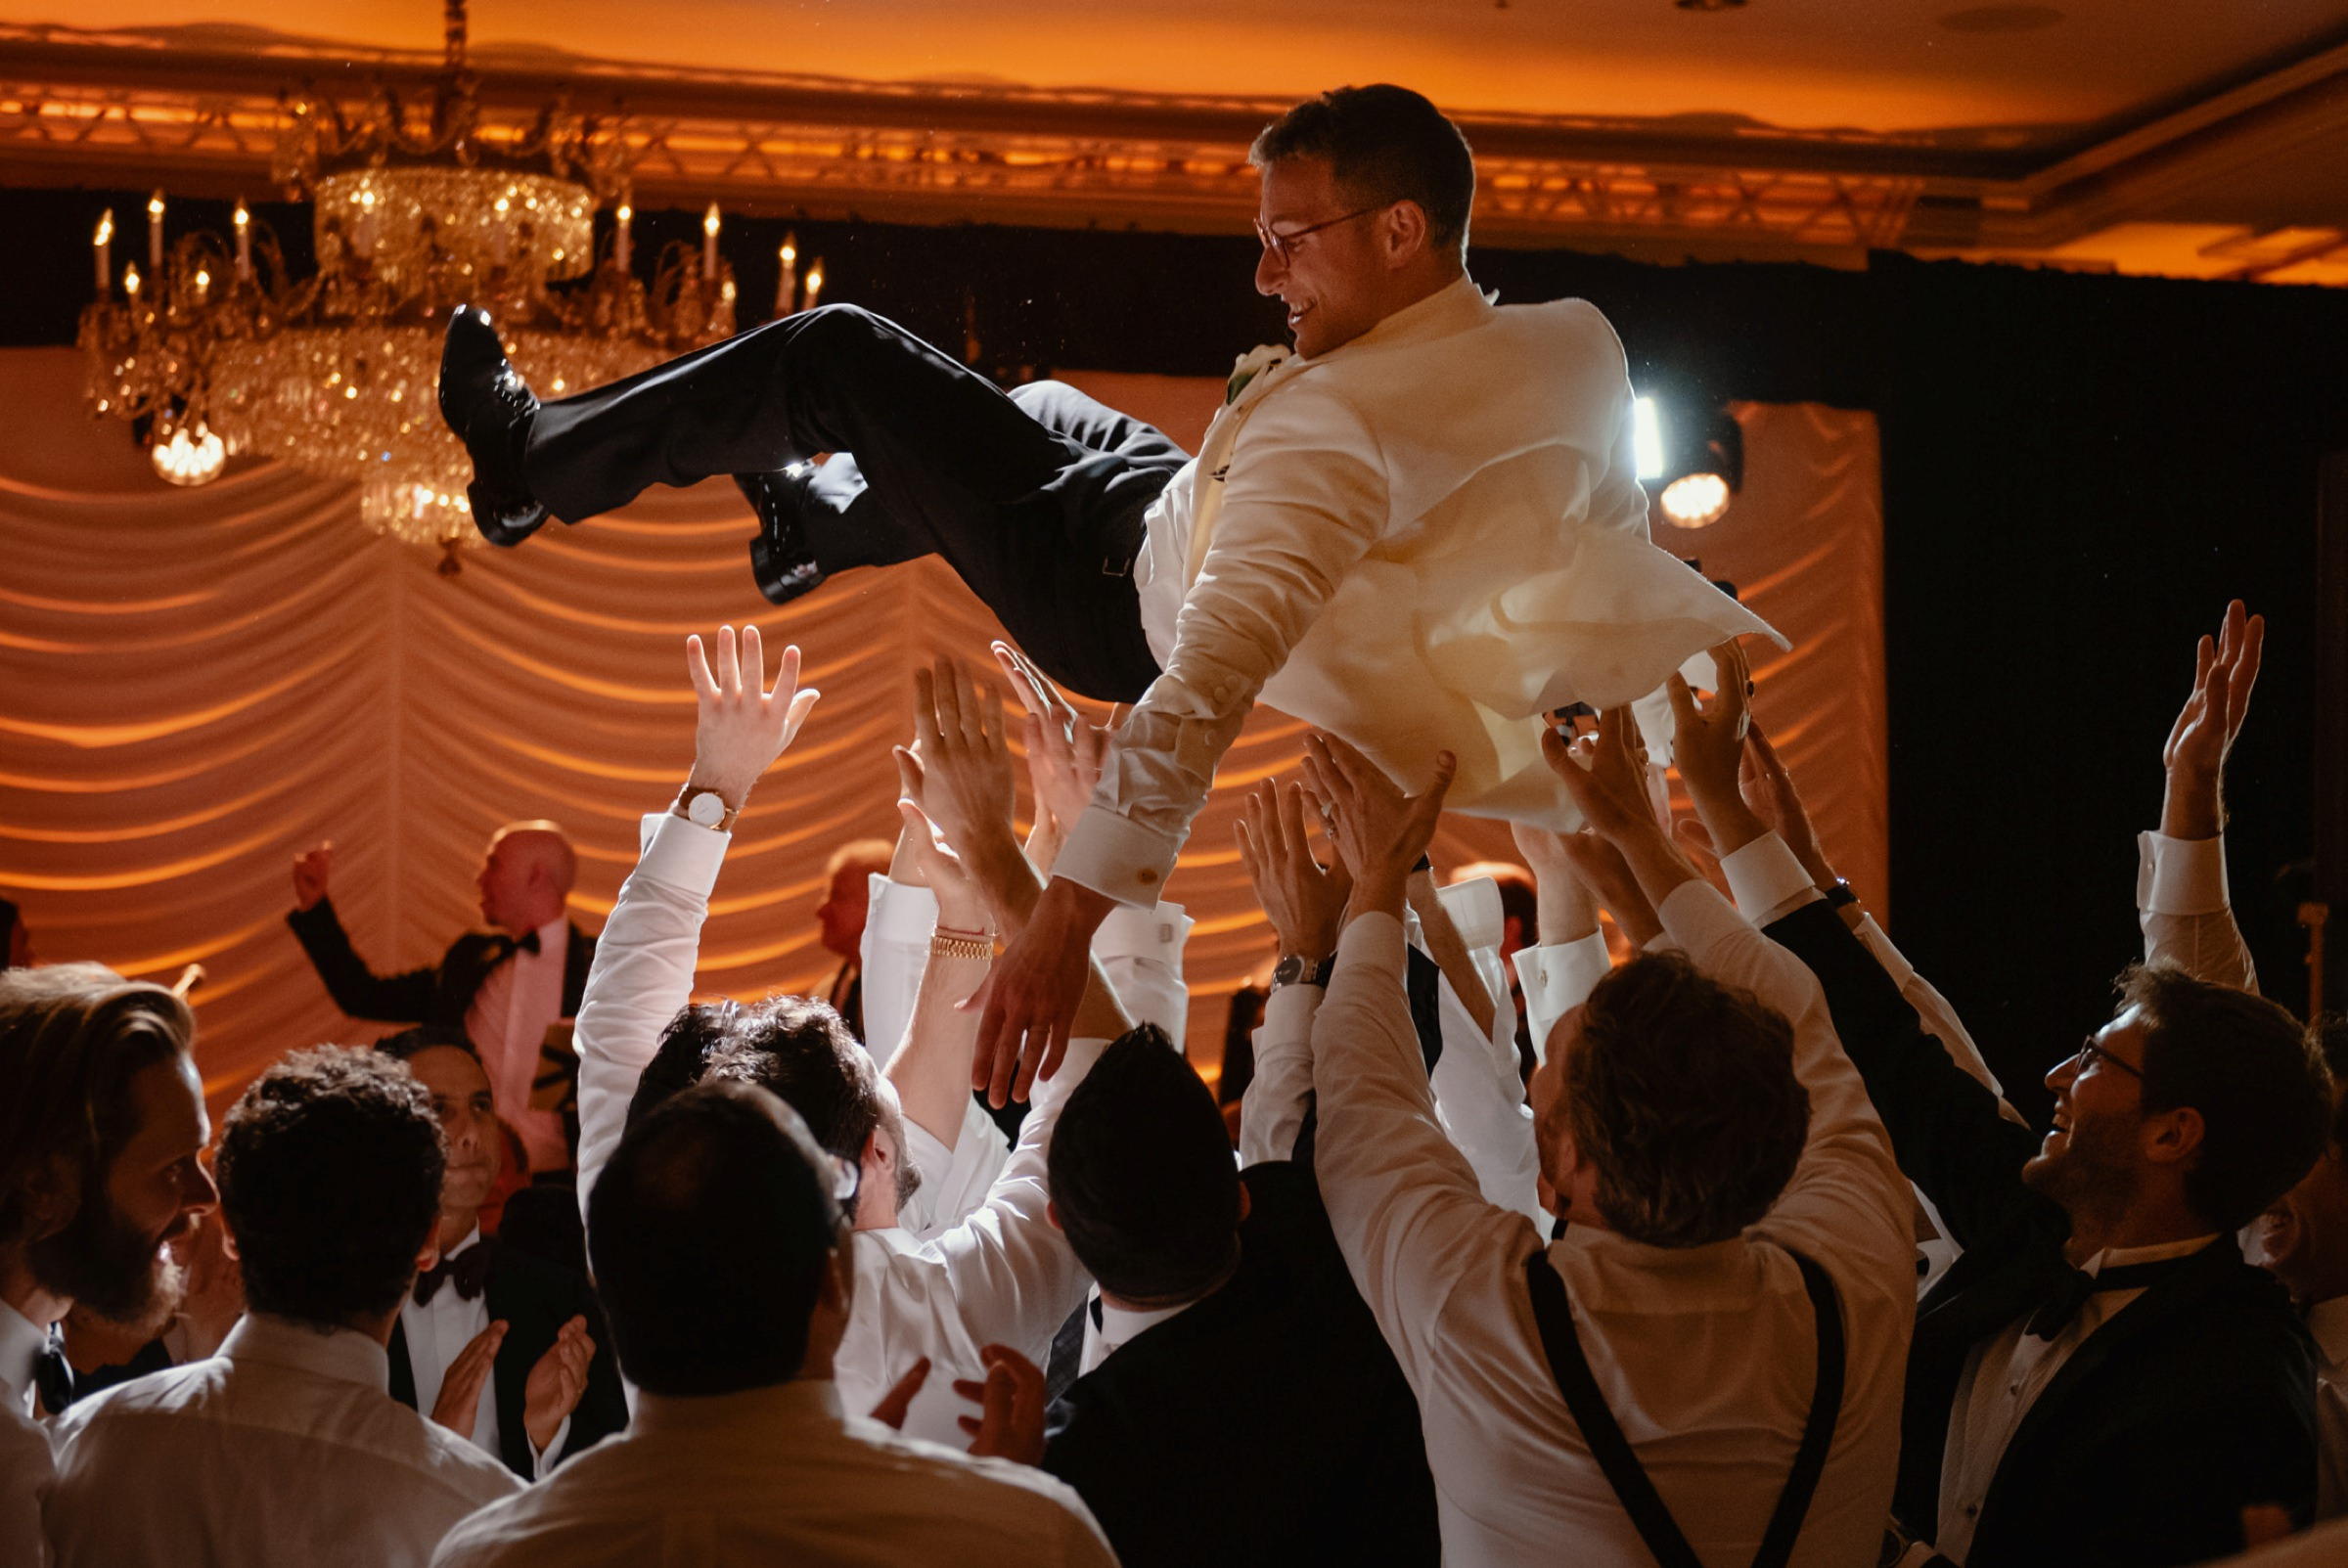 groom being held up in the air by all the groomsmen at the reception-new orleans-austin-houston-wedding- photo by Dark Roux